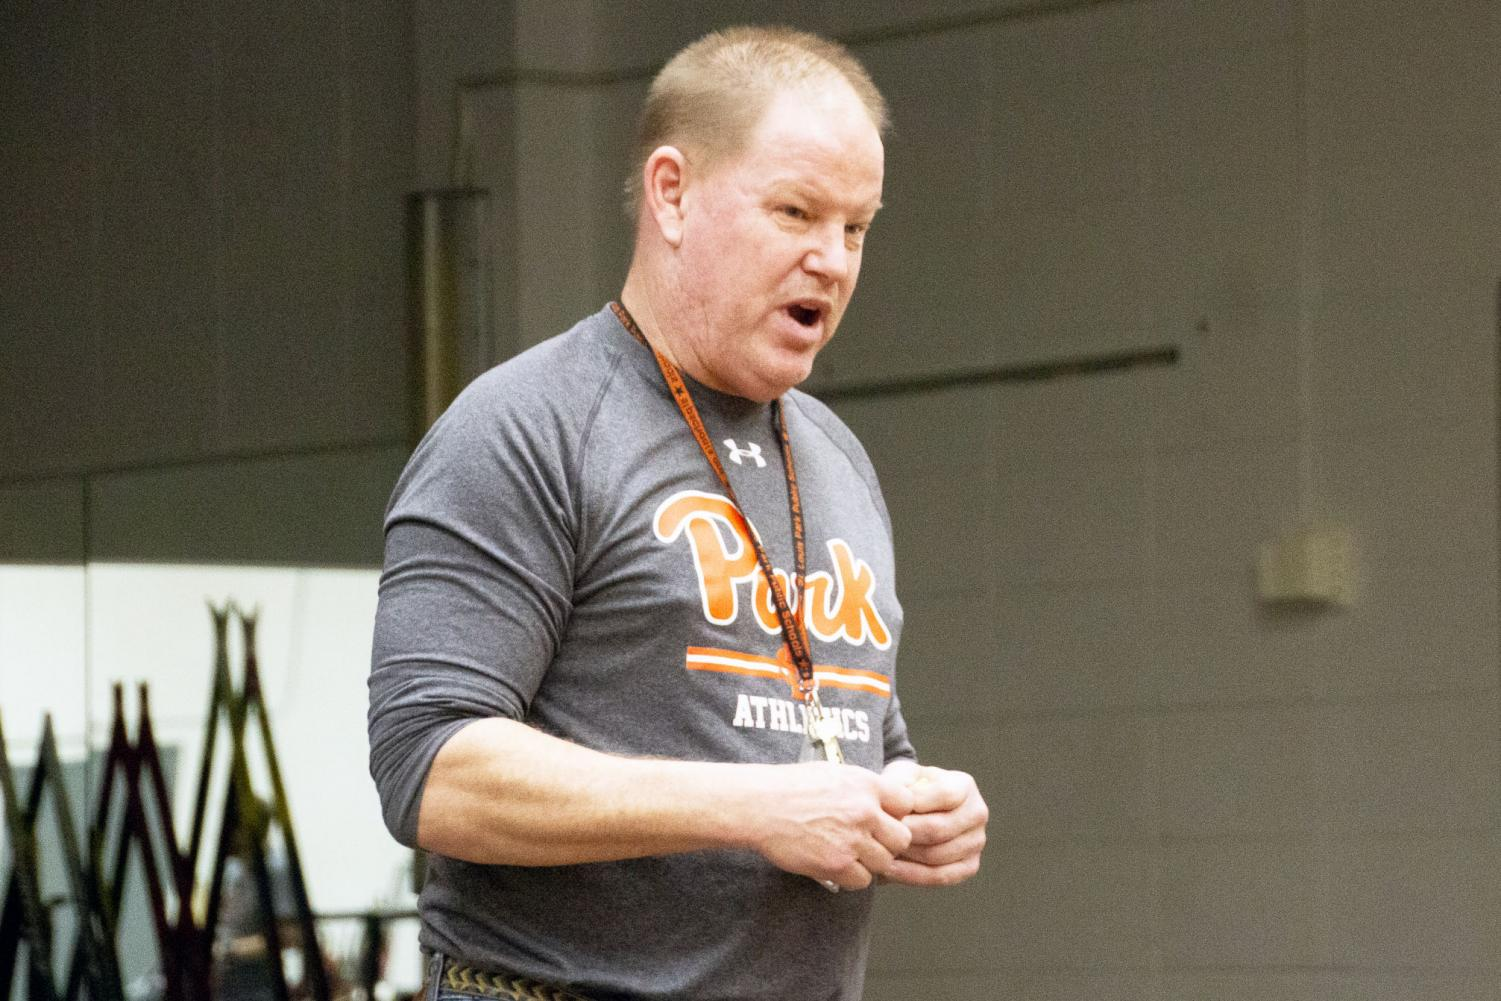 Nordic coach Doug Peterson speaks to skiers during a meeting Jan. 31. Peterson has been coaching for about 25 years.